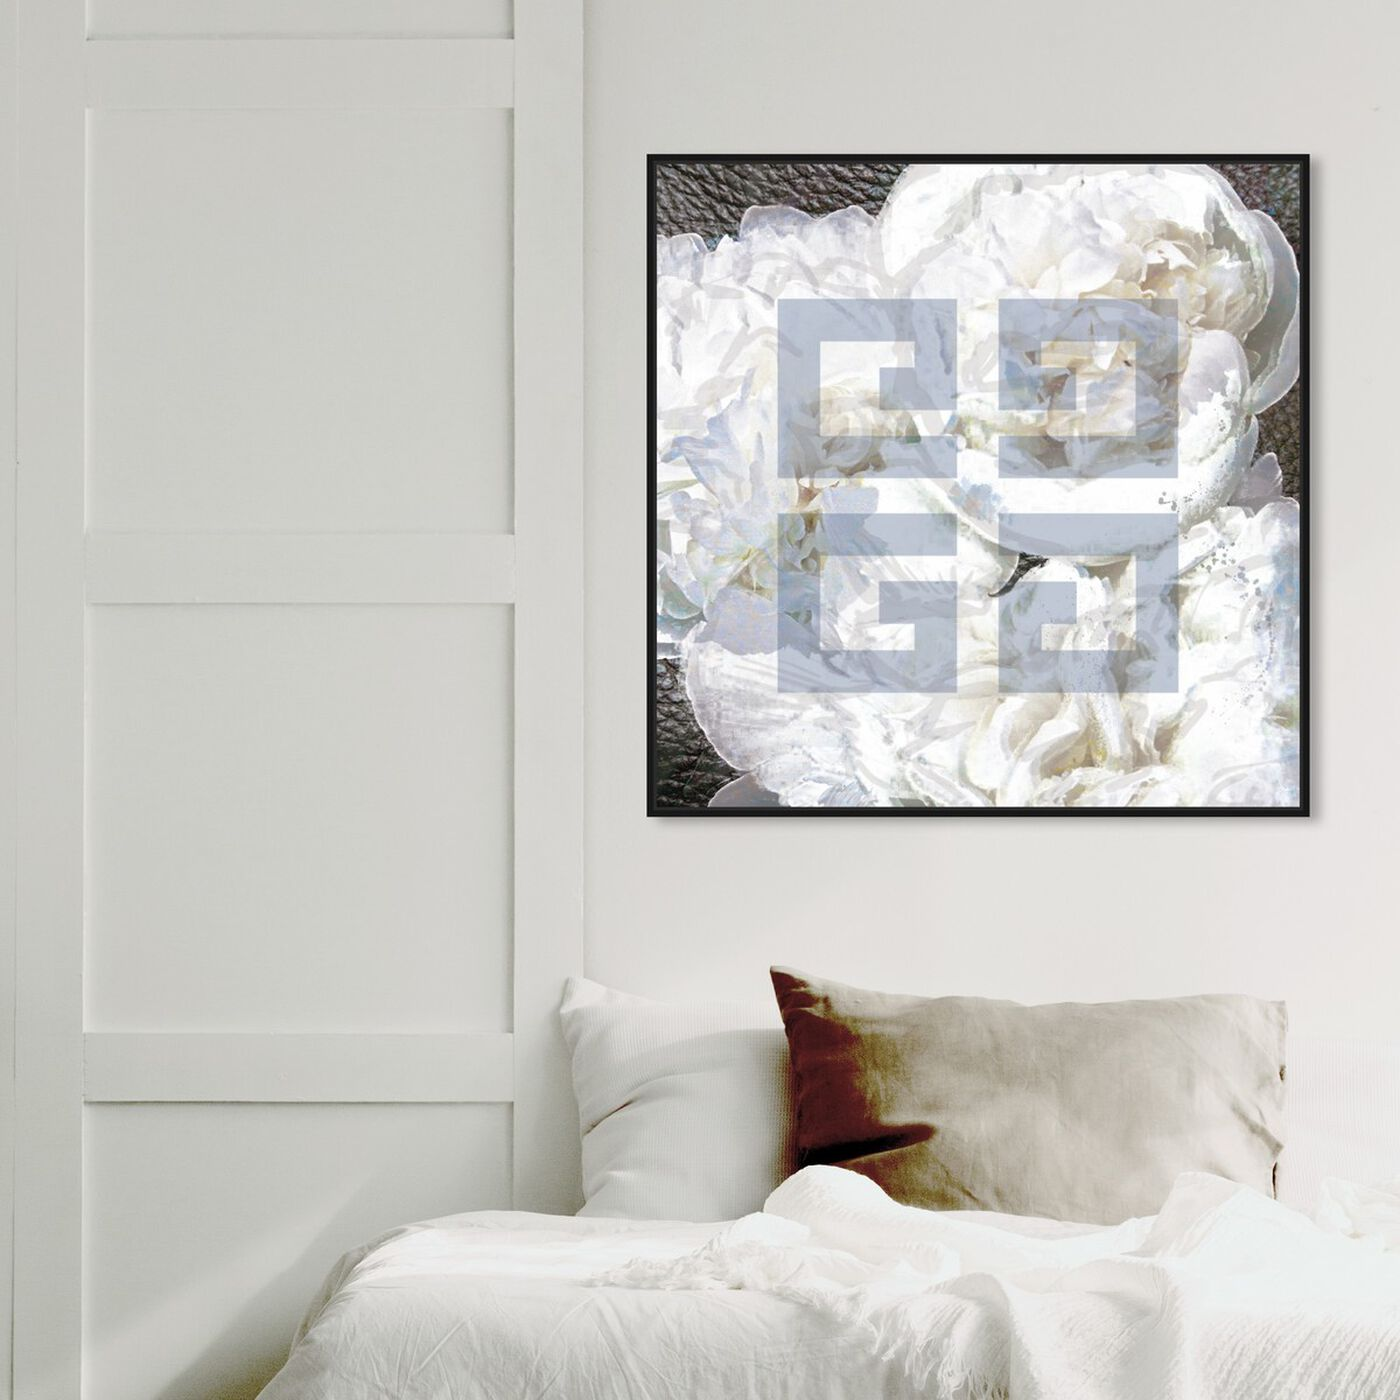 Hanging view of Dove White featuring abstract and textures art.